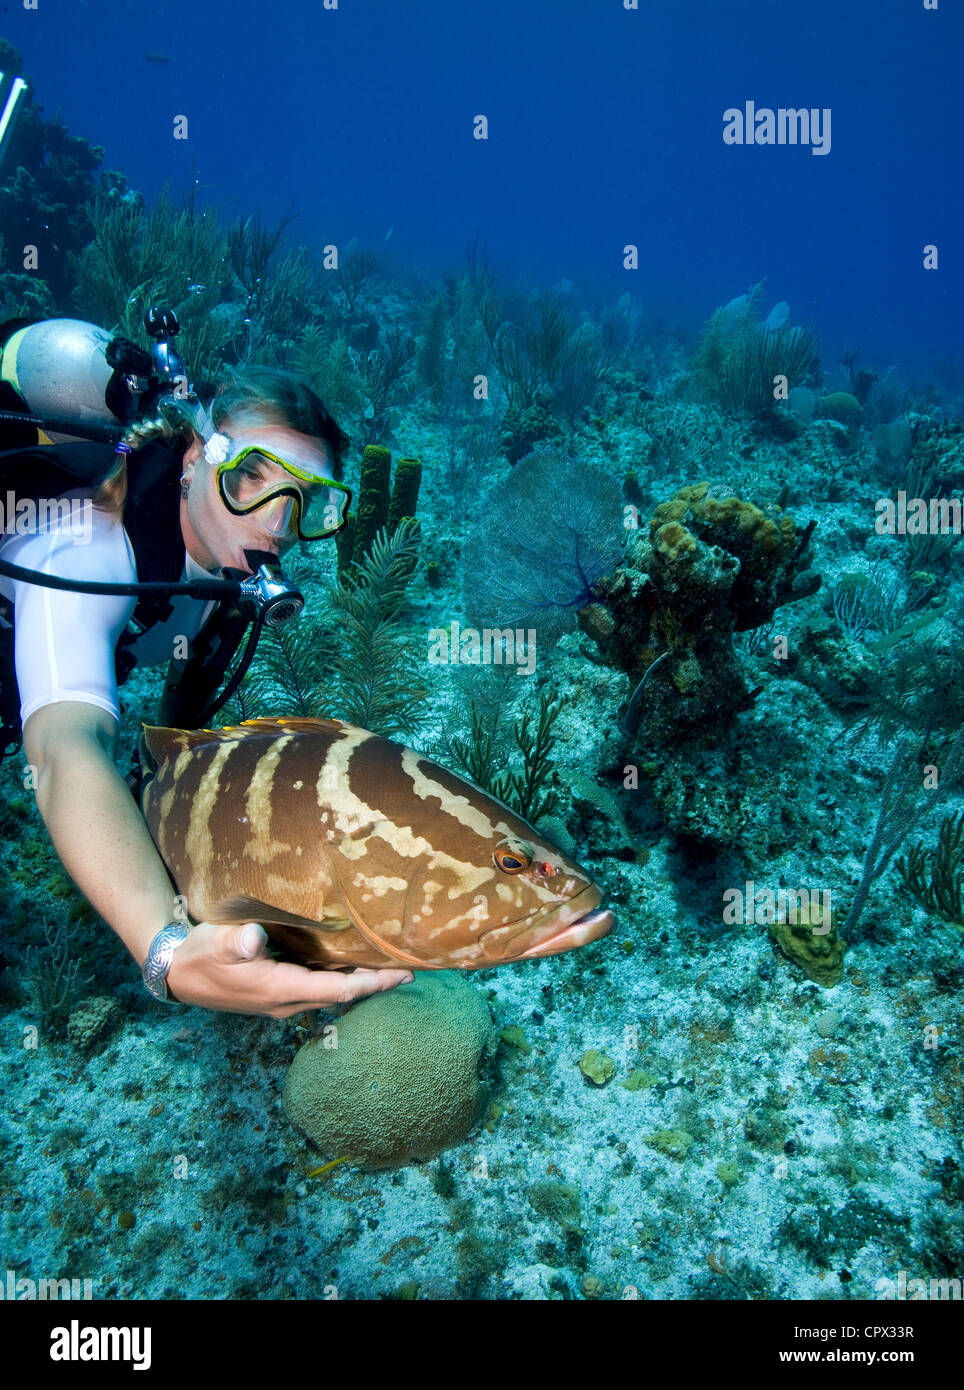 Interaction with Marine Life - Stock Image